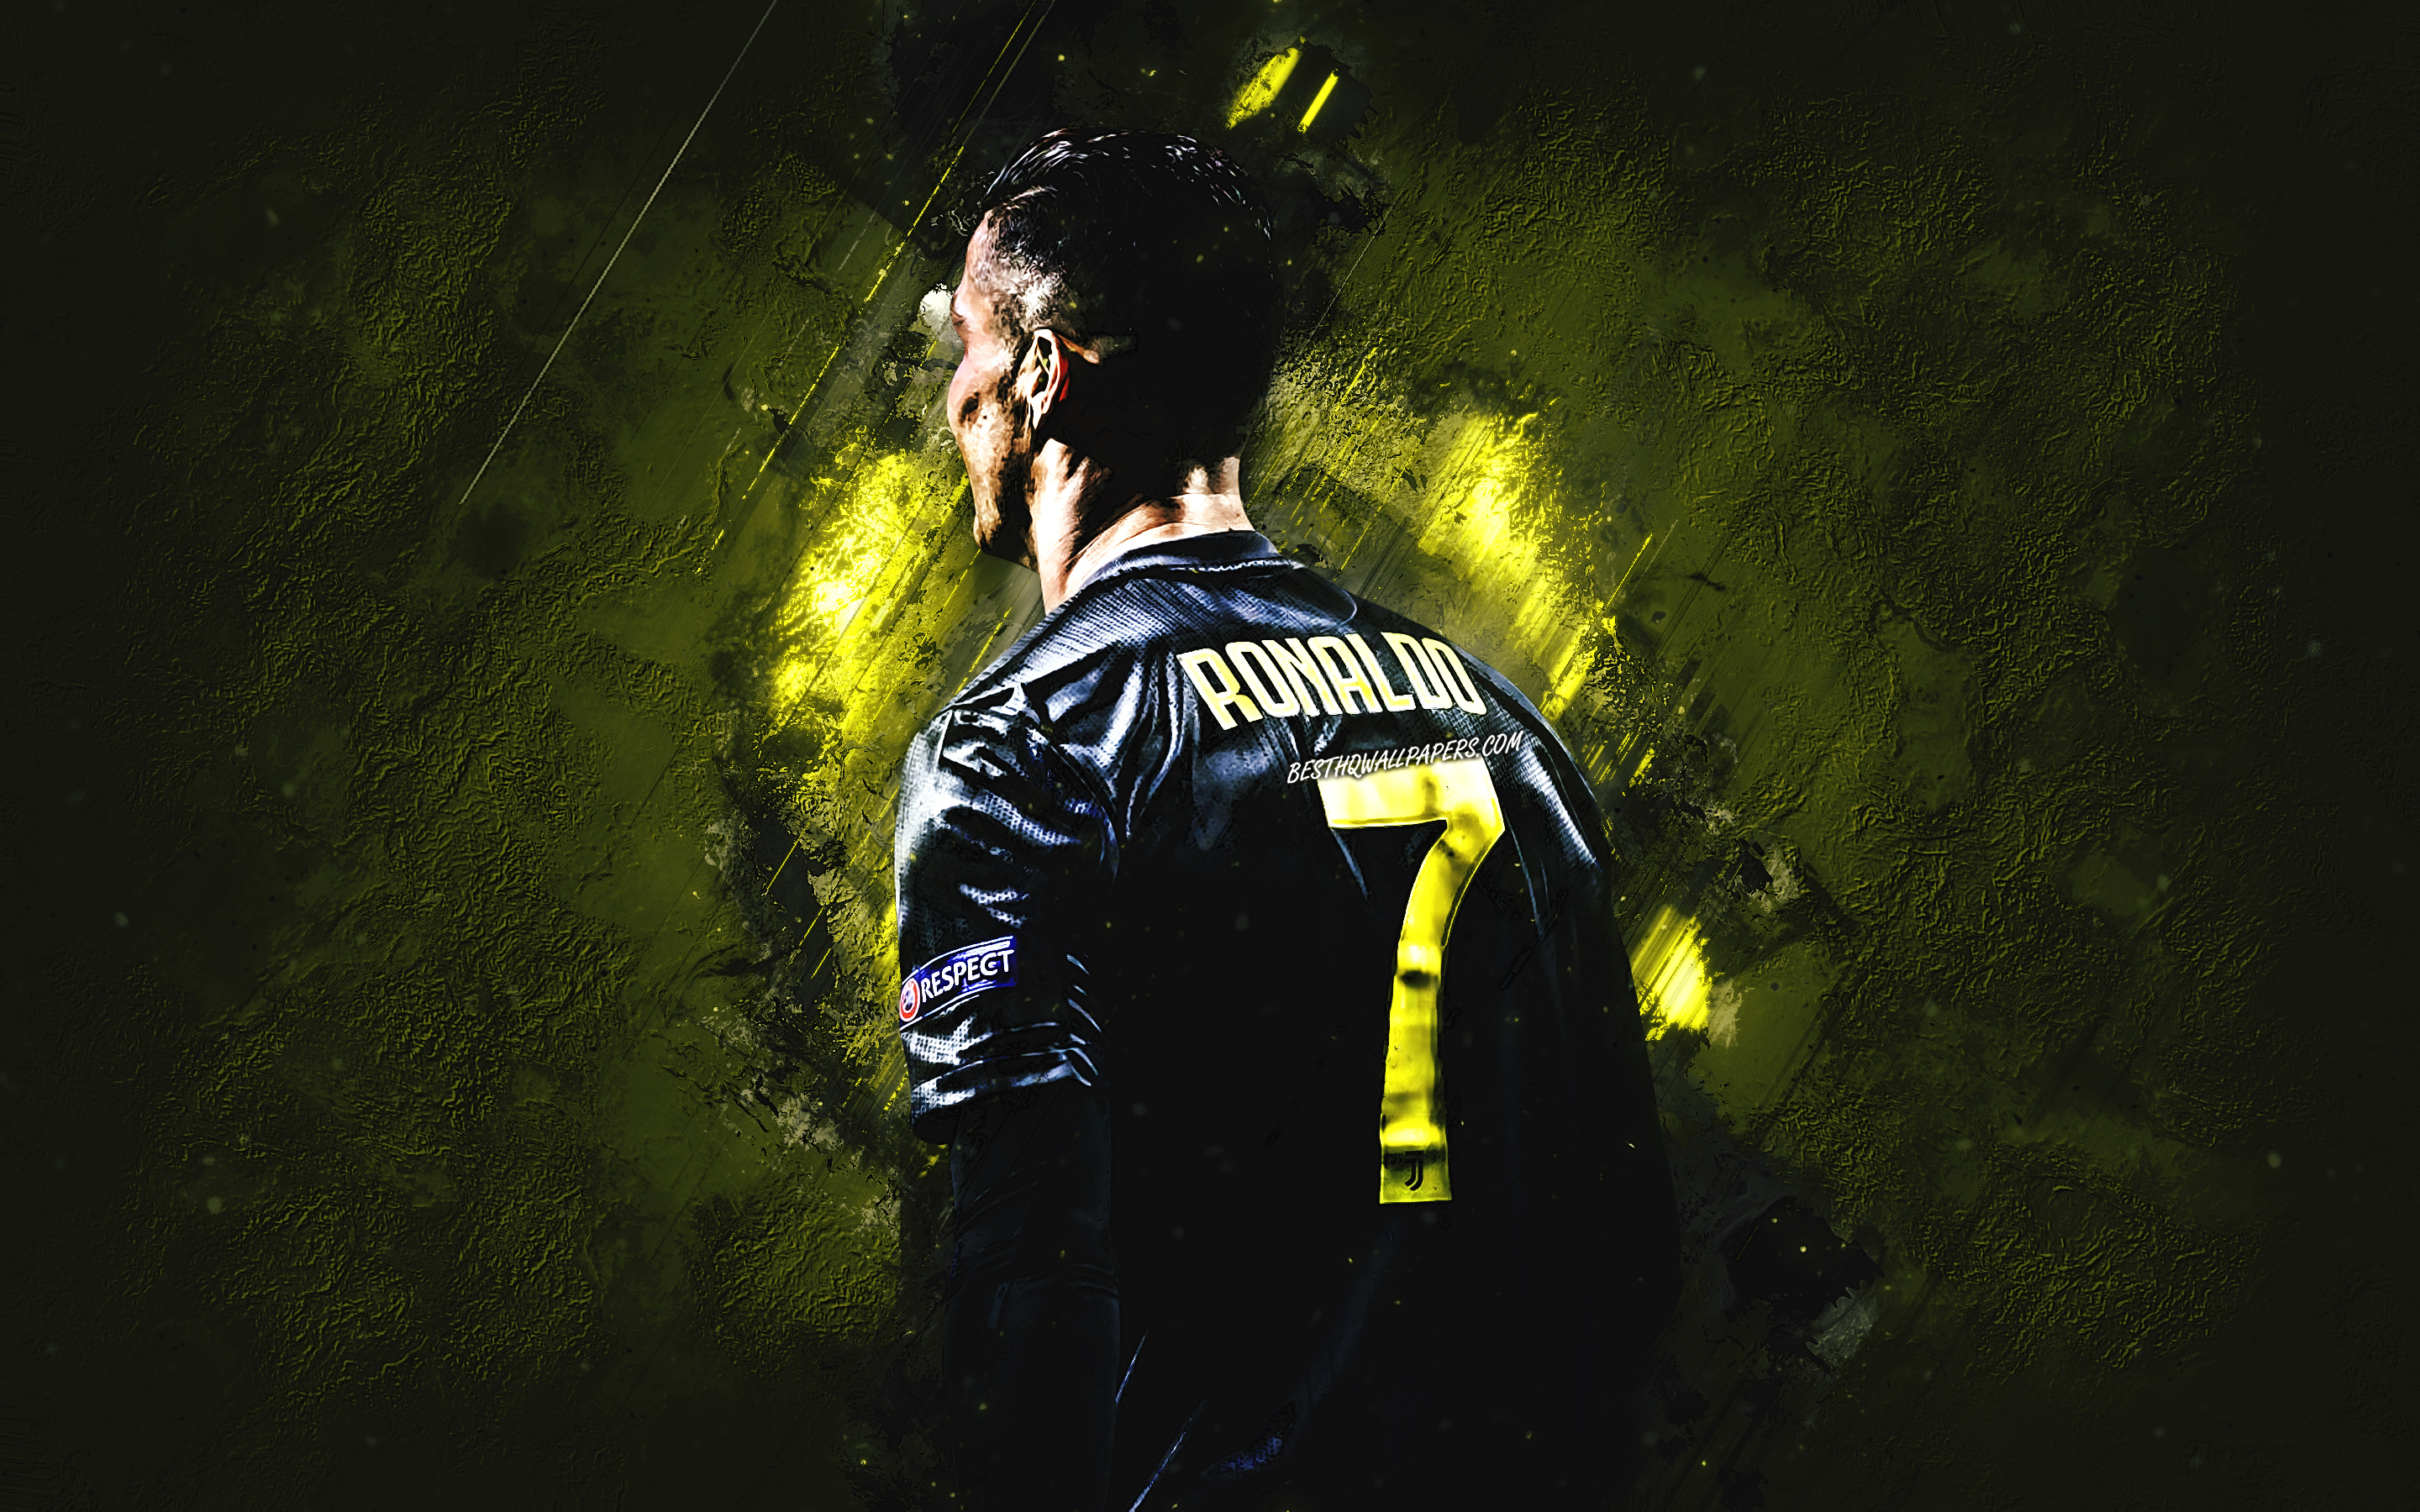 Cristiano Ronaldo Portuguese Soccer Player Juventus Cr7 Wallpaper Hd Black 2622447 Hd Wallpaper Backgrounds Download